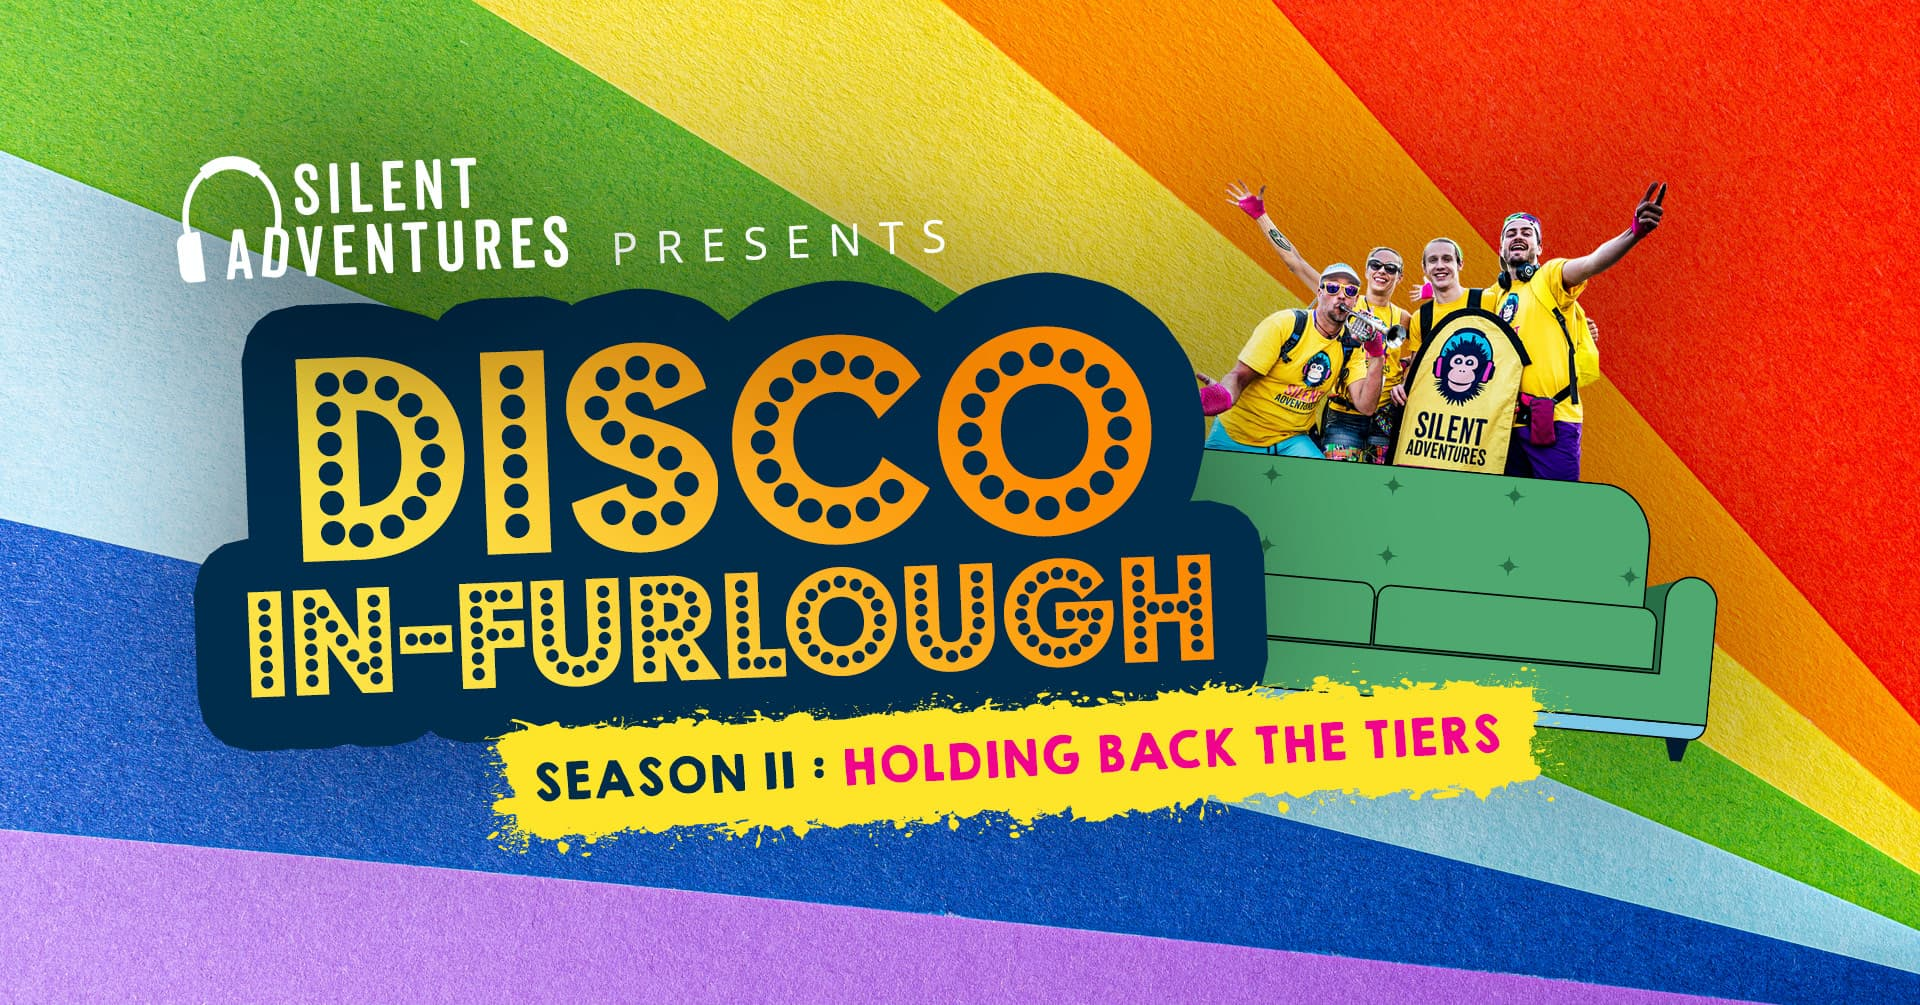 Disco In-Furlough Season II